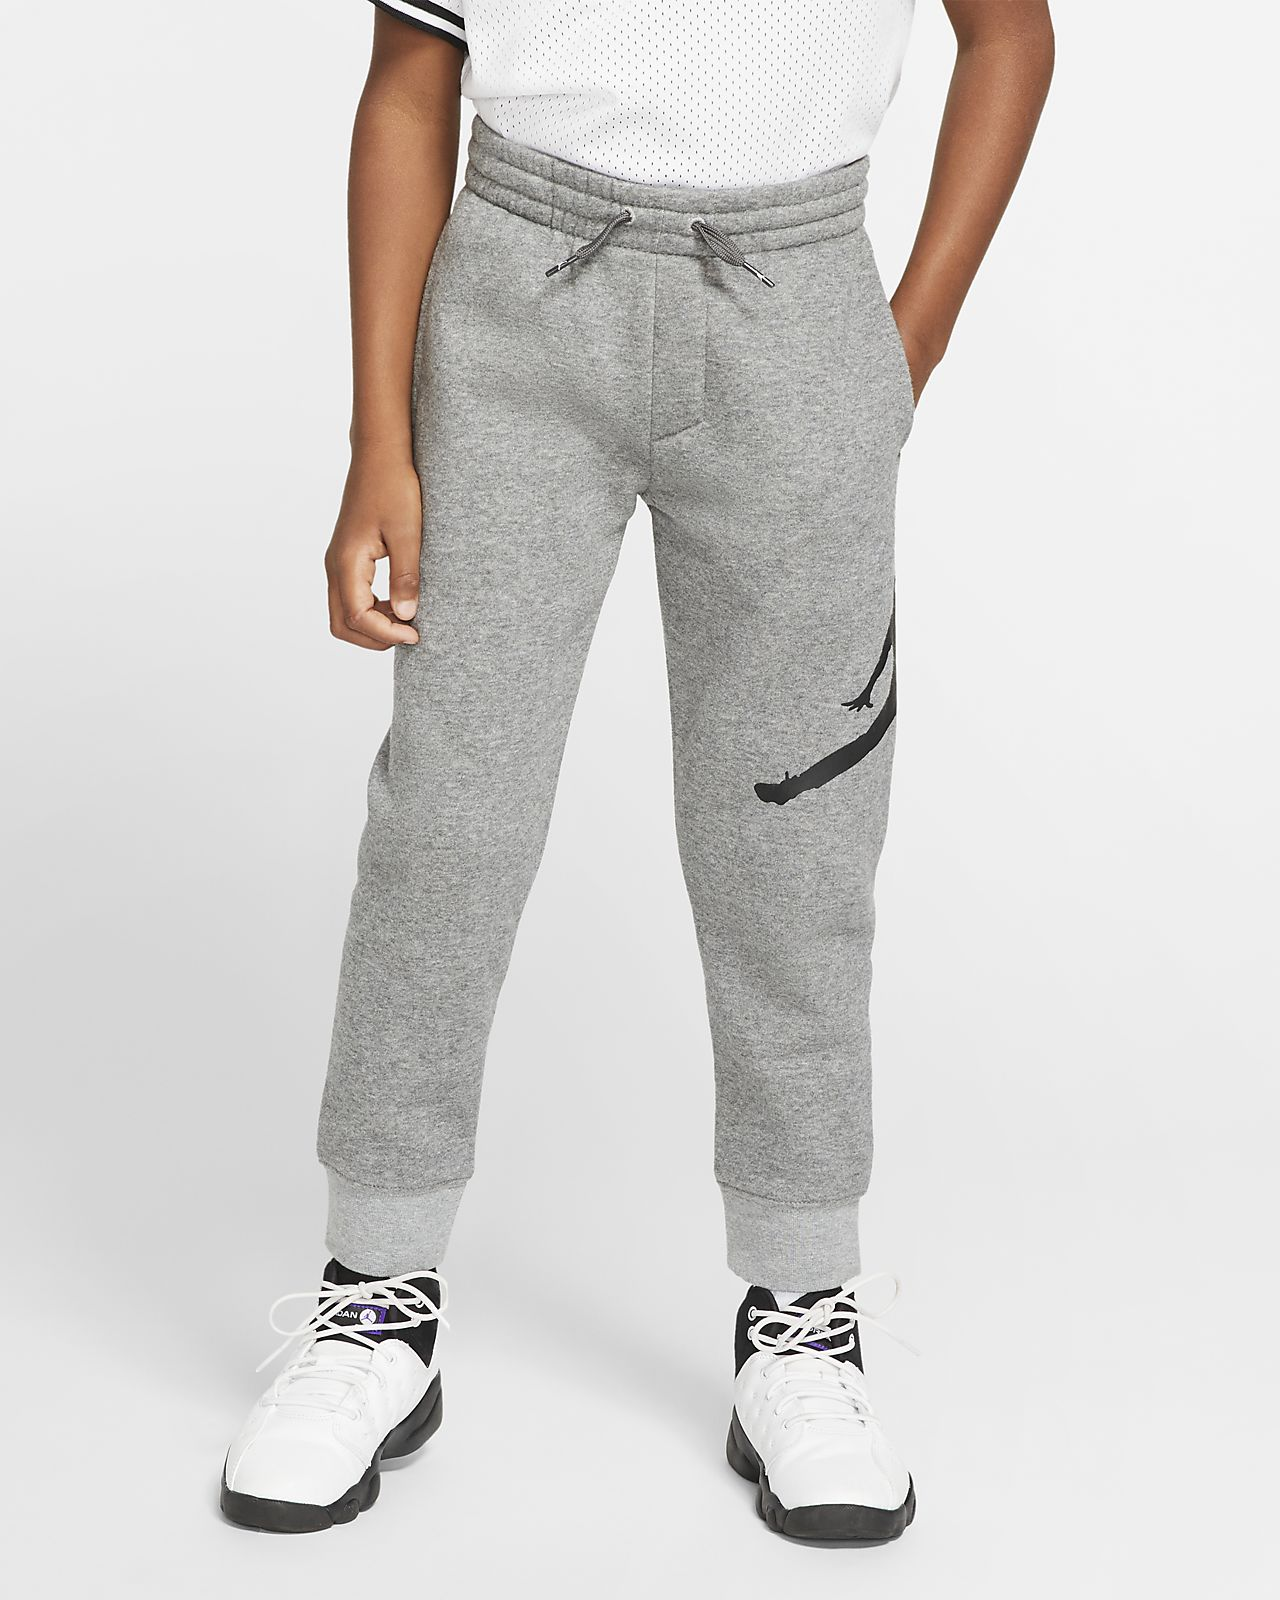 Jordan Jumpman Little Kids' Fleece Joggers